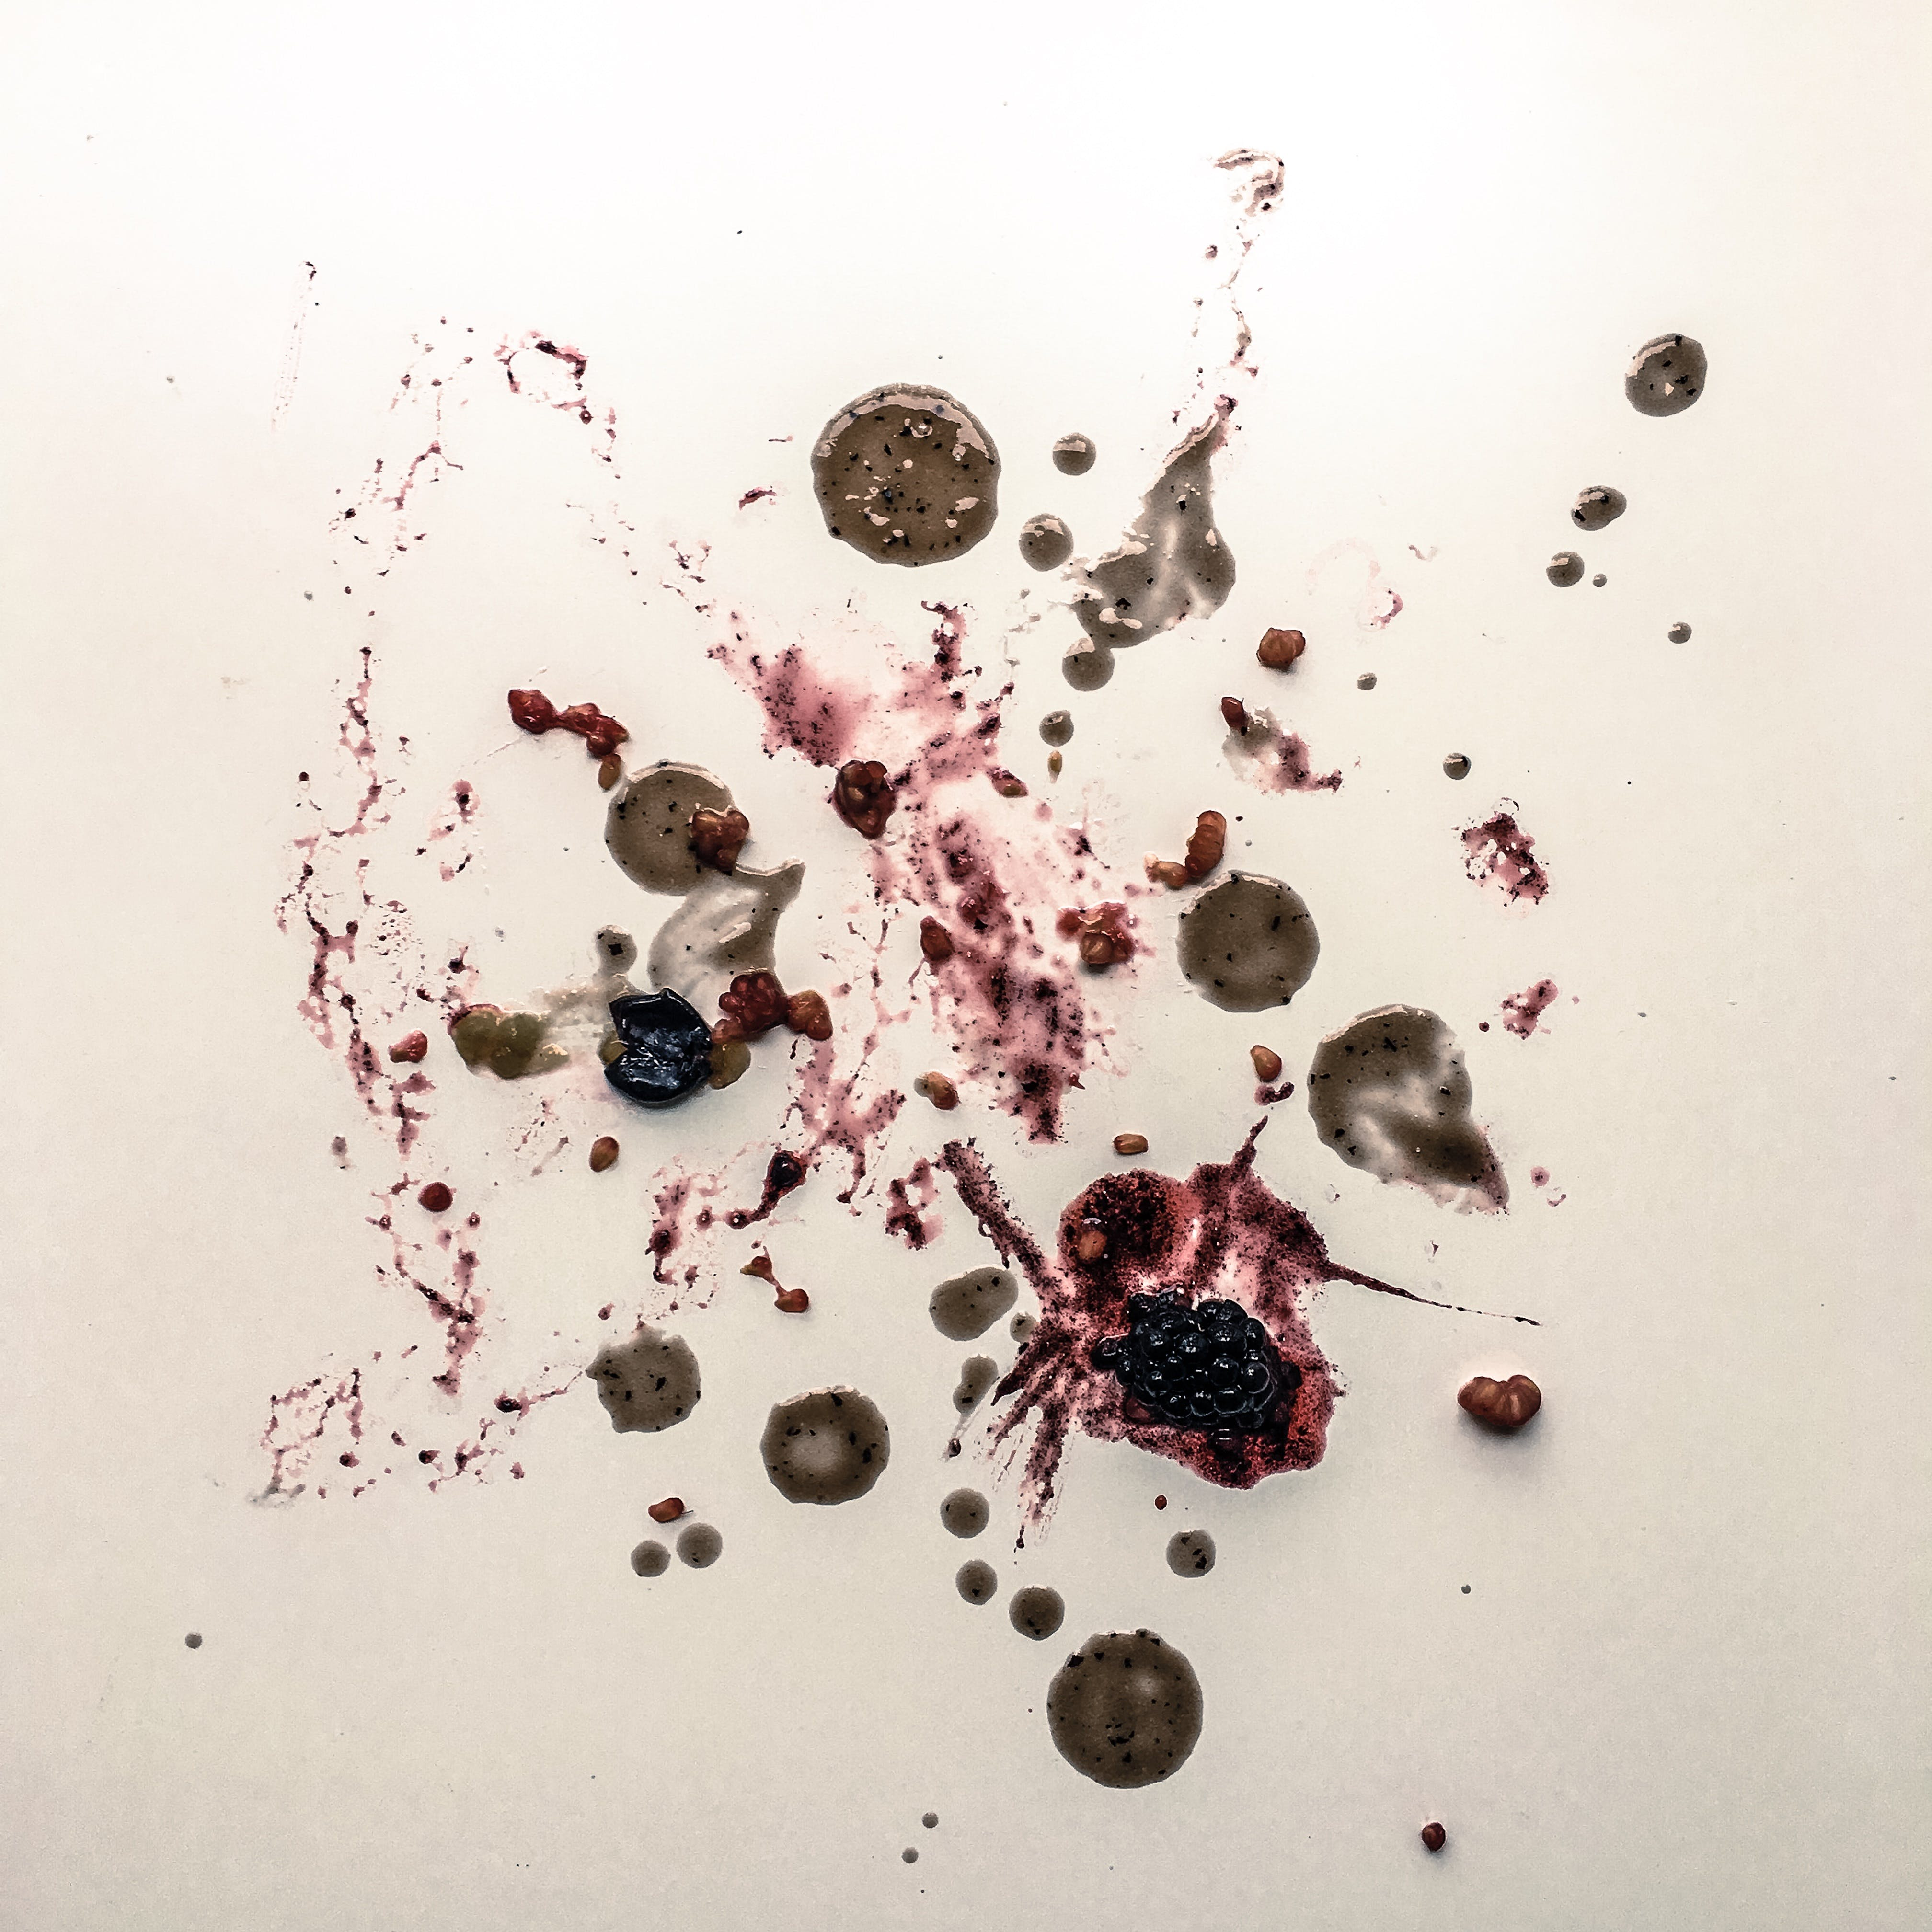 Free stock photo of Created Still Life, dirty, Dirty Surface, Dirty White Surface